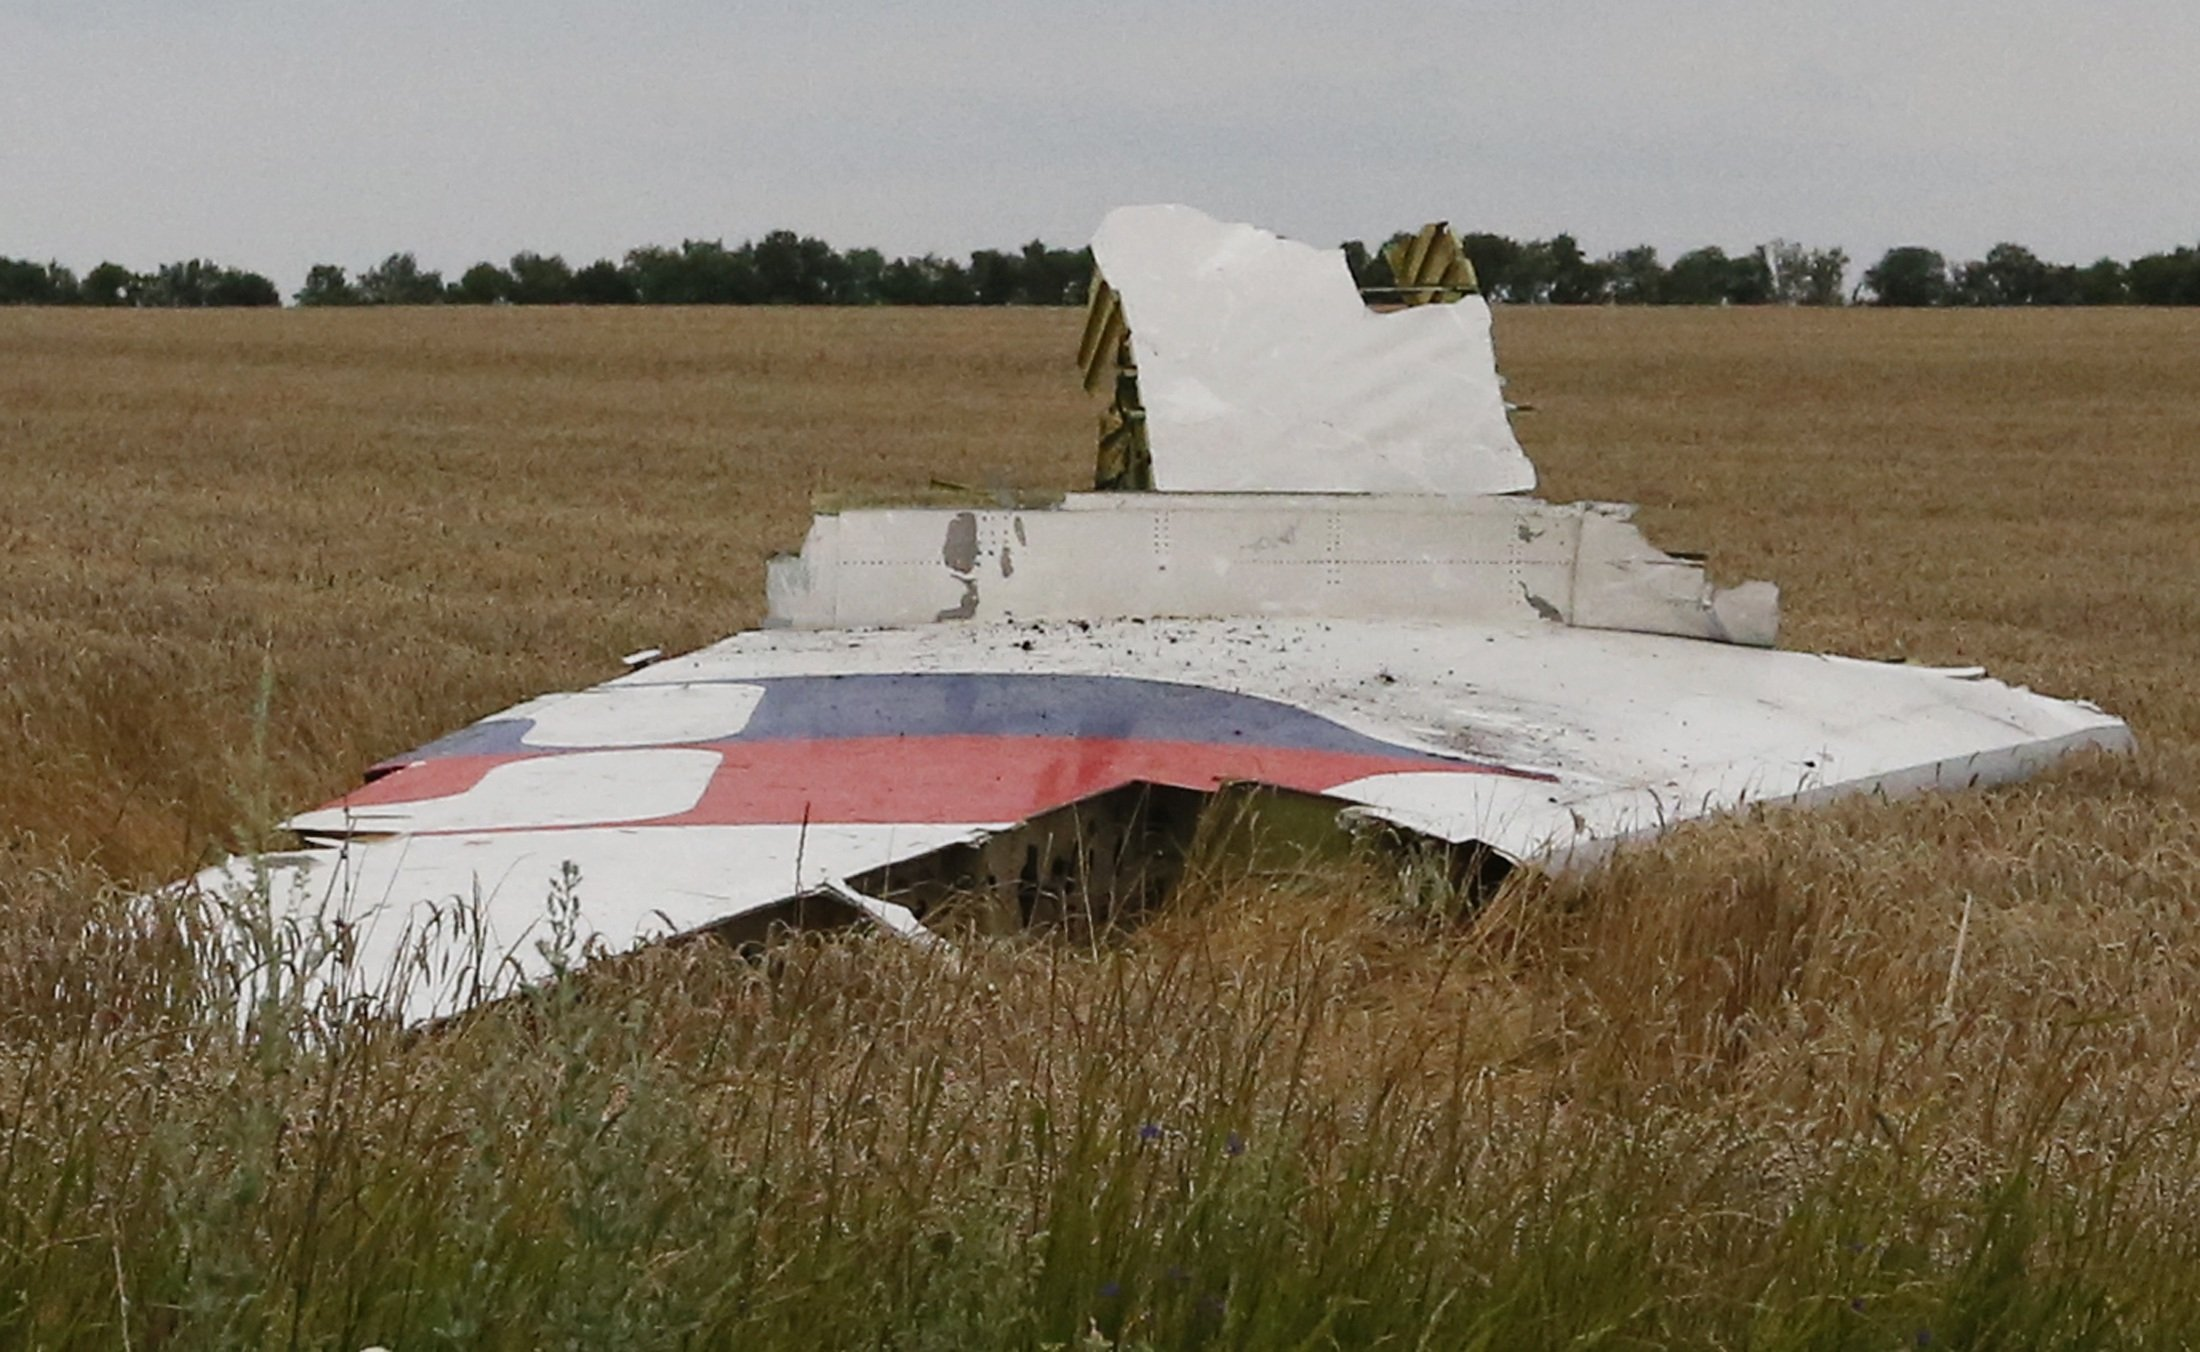 A part of the wreckage of a Malaysia Airlines Boeing 777 plane is seen after it crashed near the settlement of Grabovo in the Donetsk region, July 17, 2014.